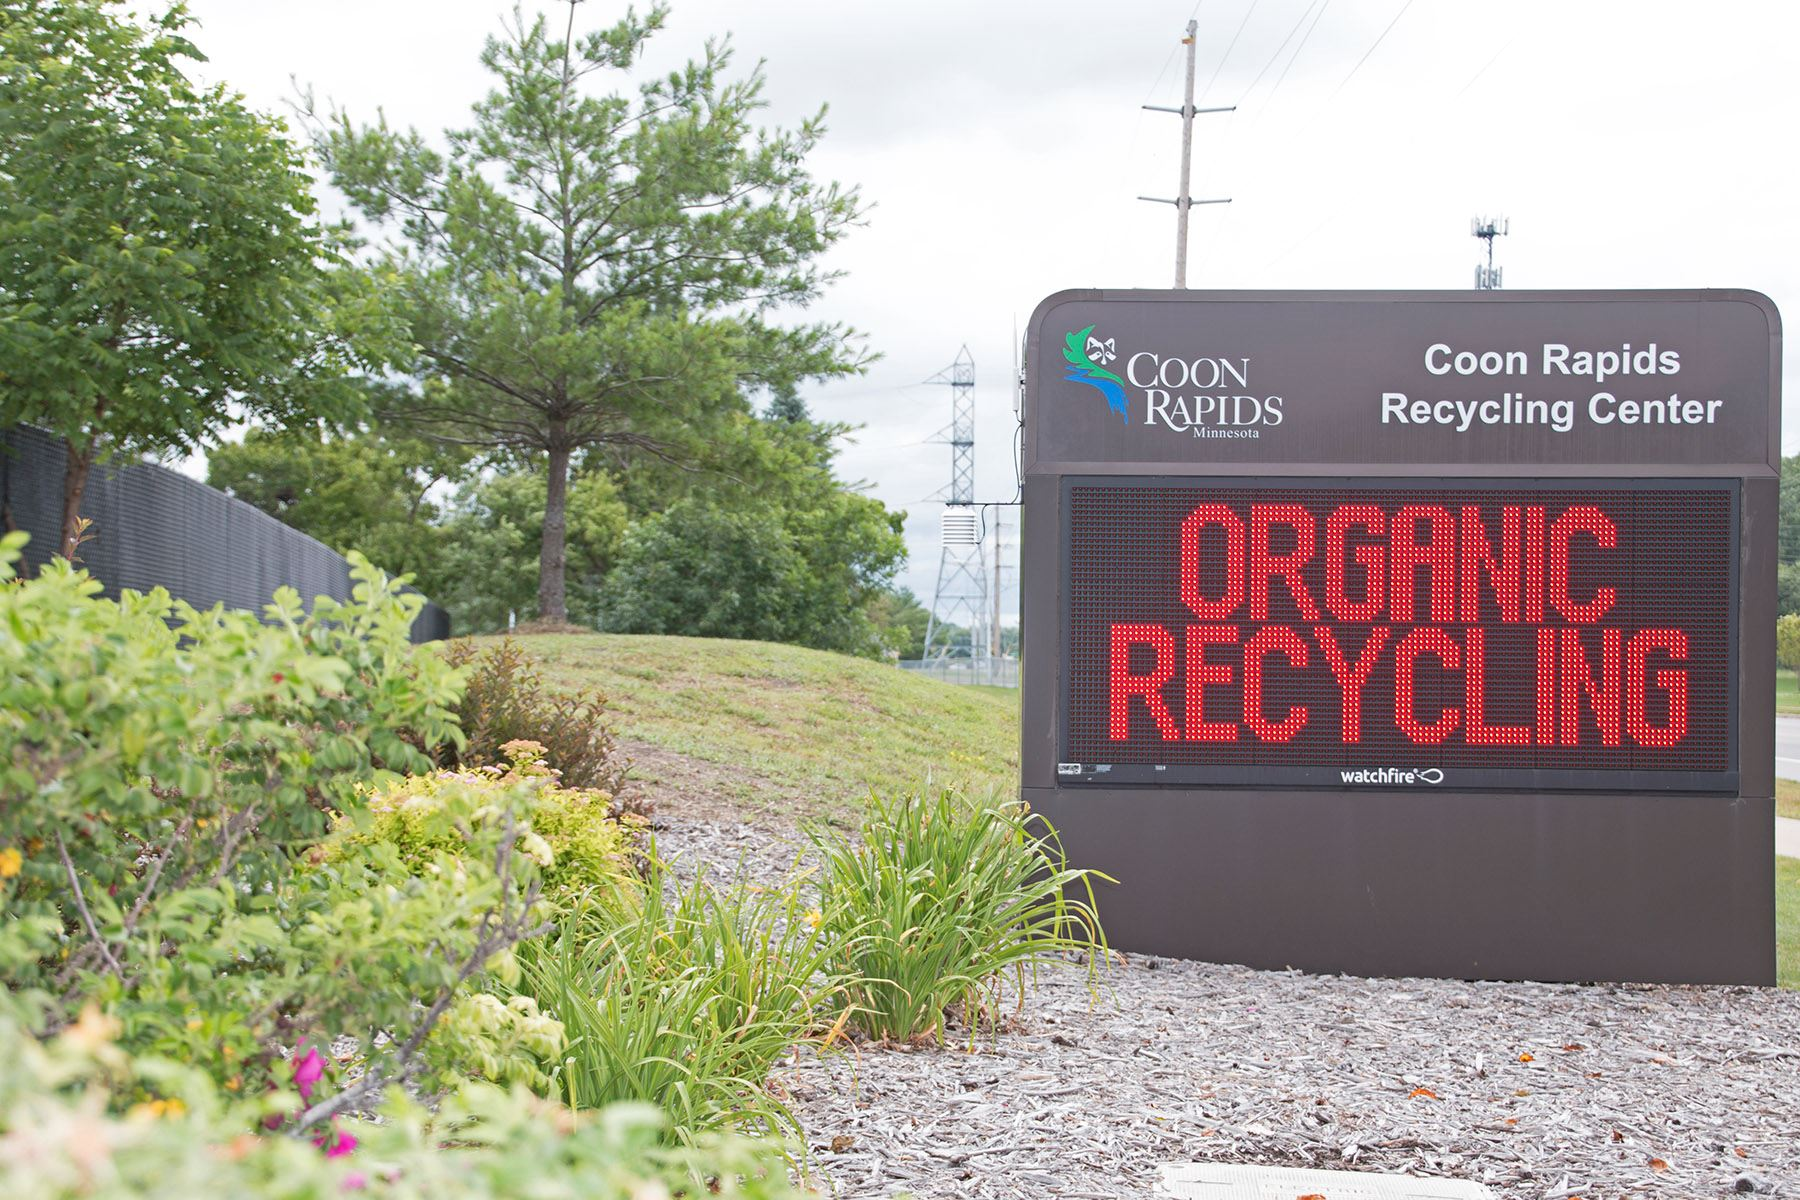 Coon Rapids Recycling Center Roadside Sign